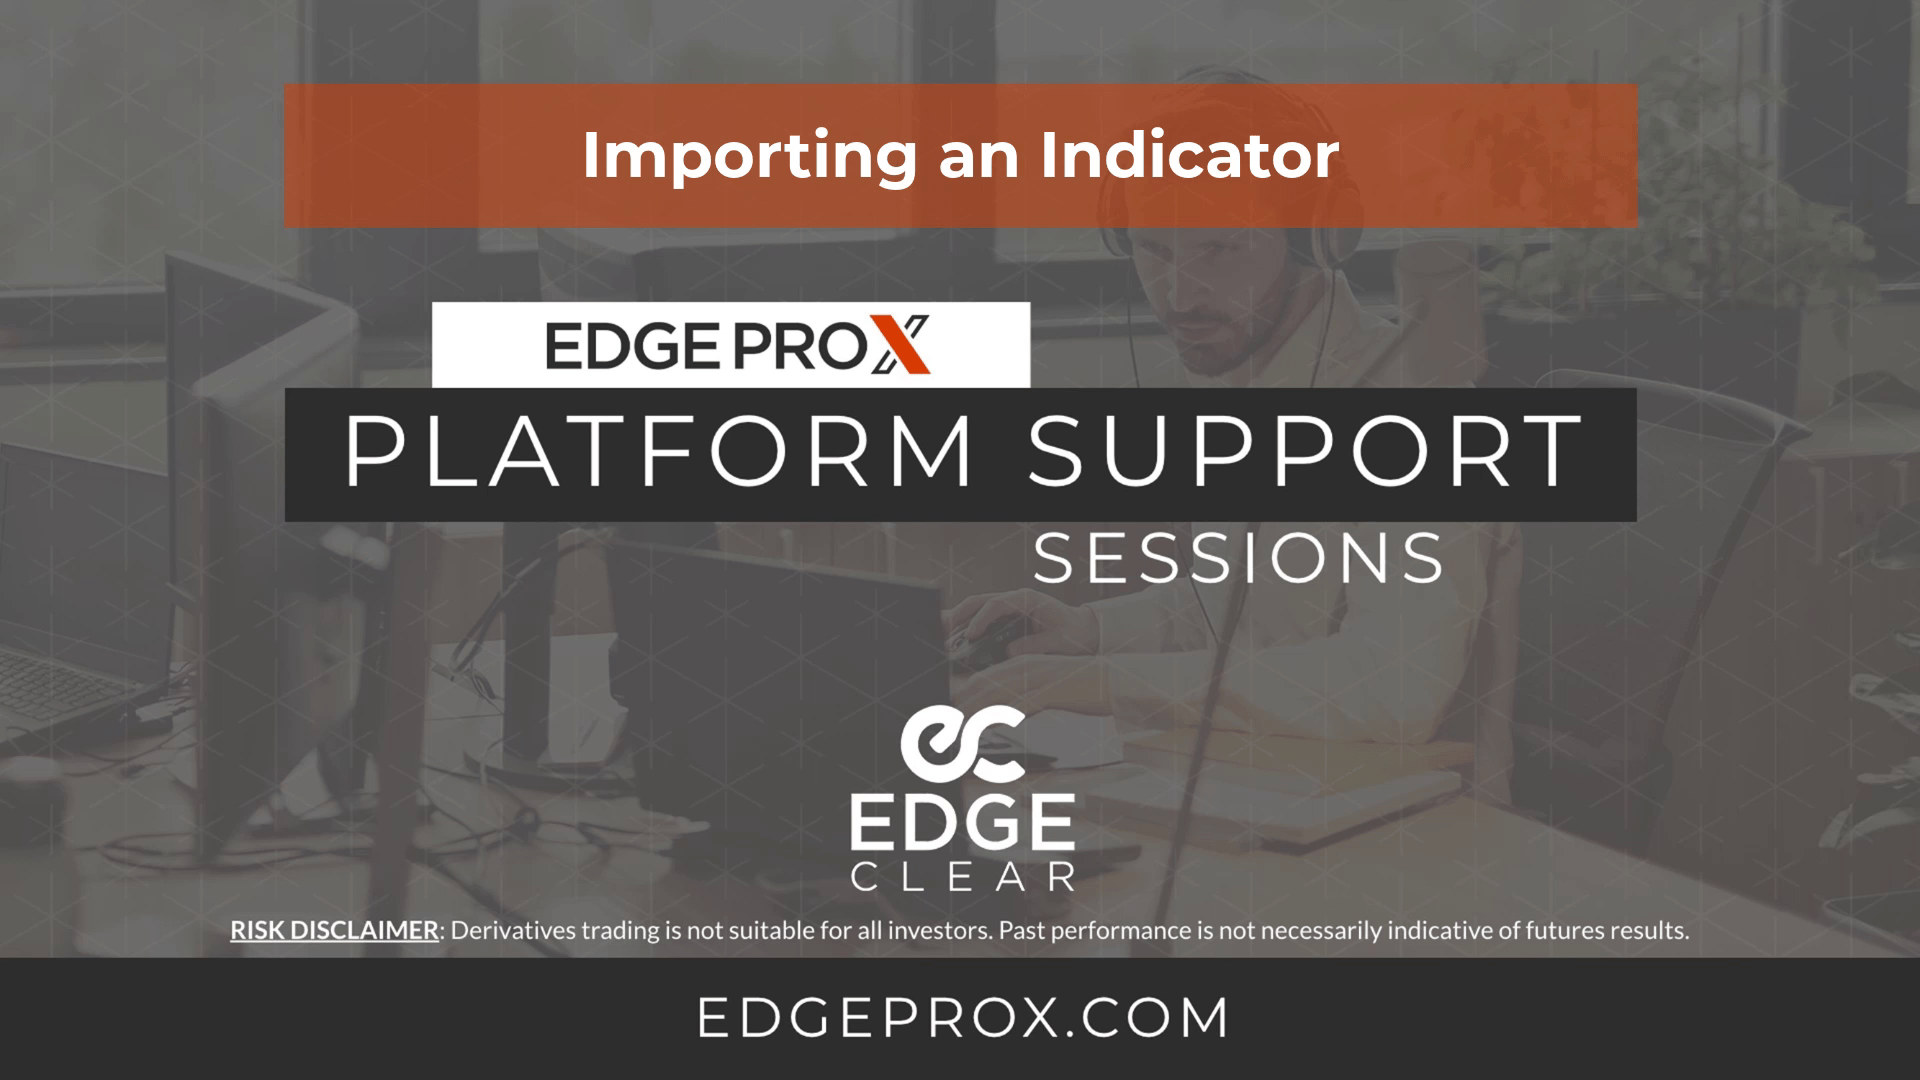 EdgeProX Importing an Indicator